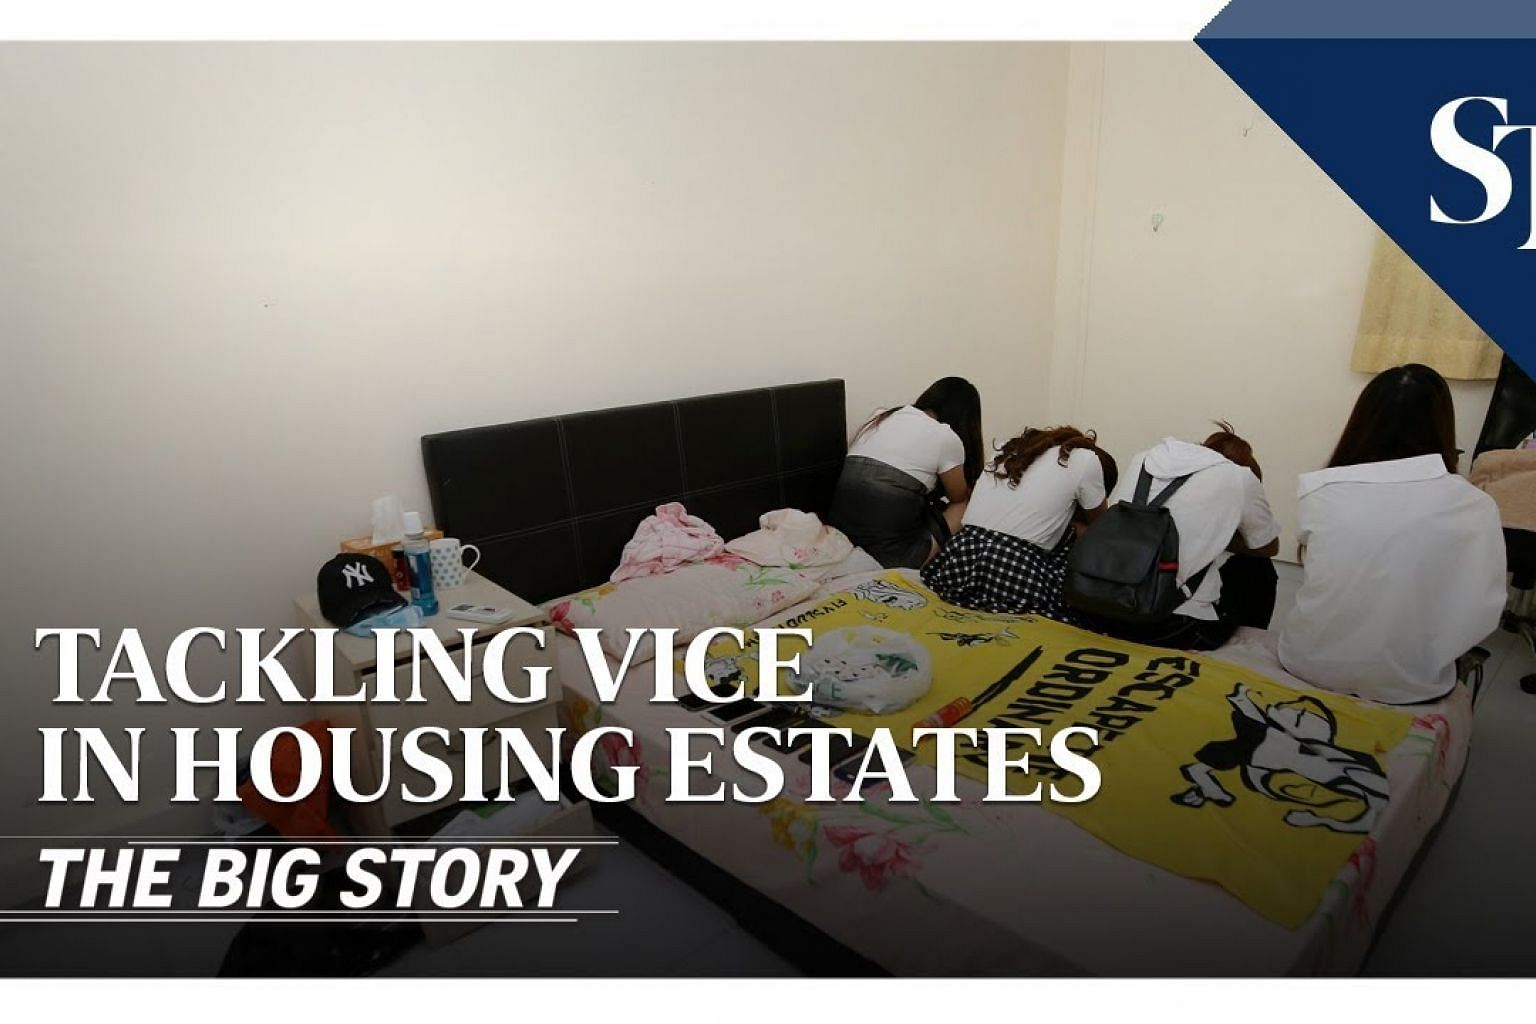 Tackling vice in housing estates | THE BIG STORY | The Straits Times